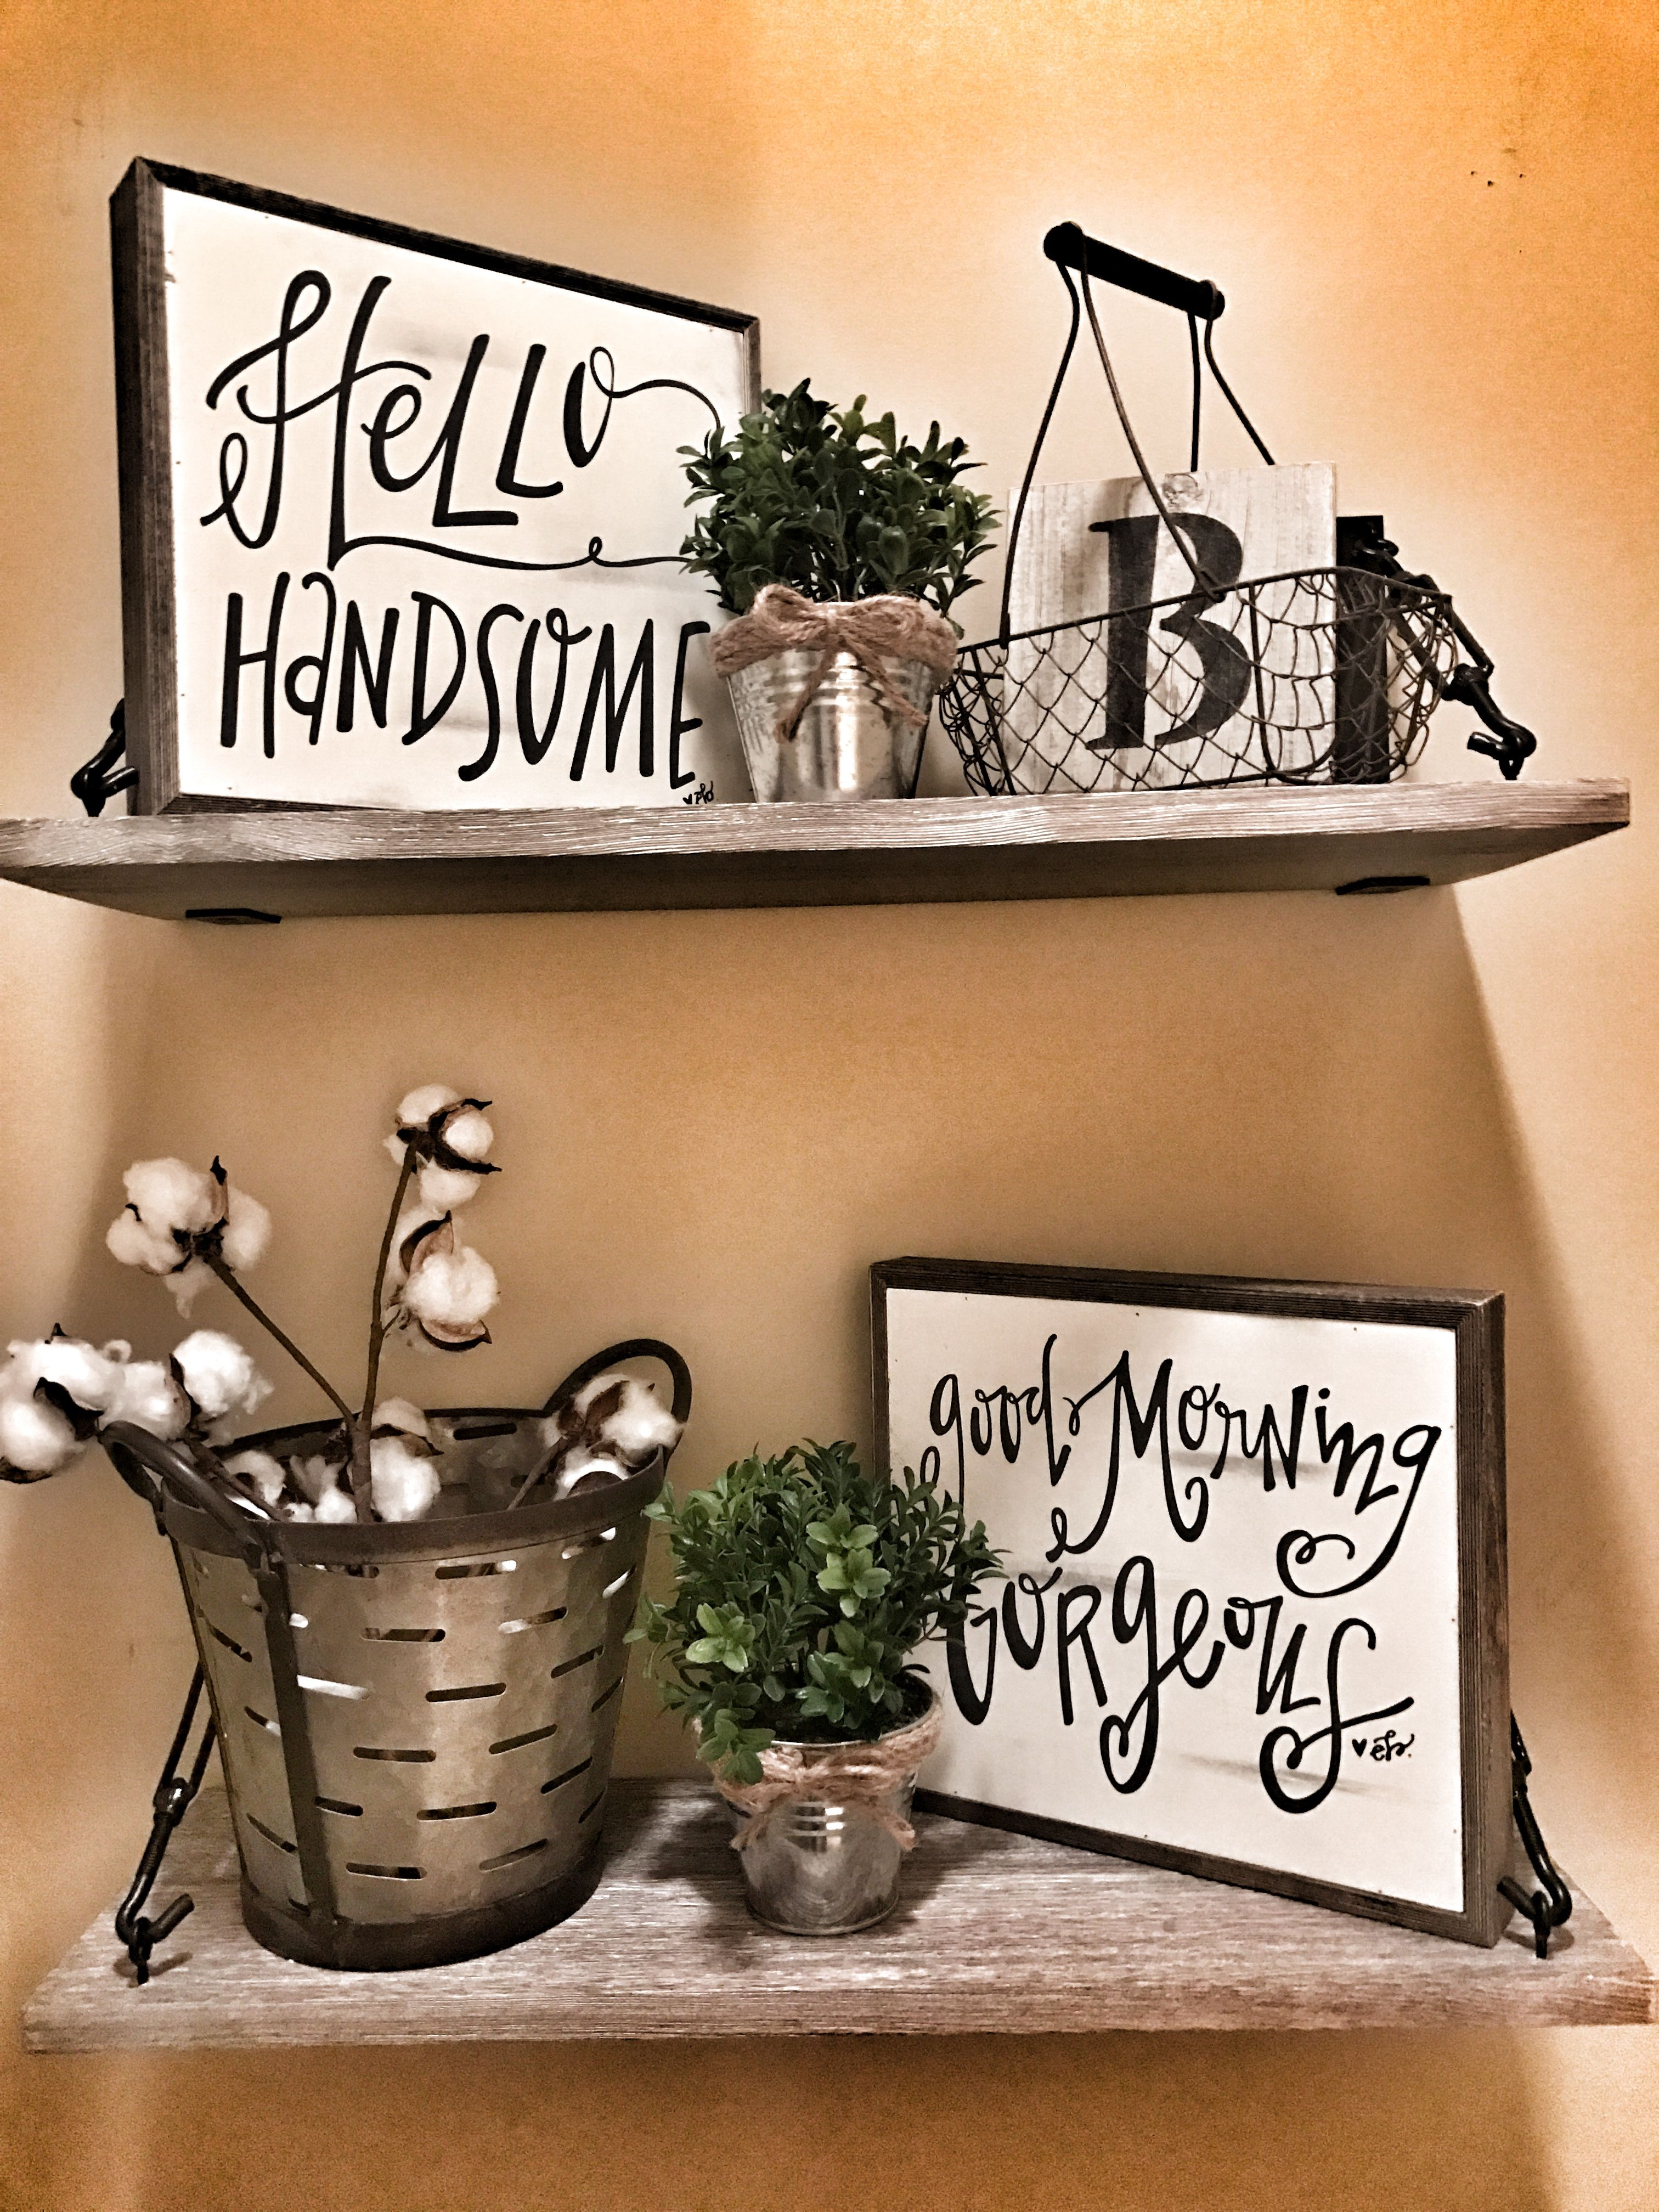 Farmhouse Rustic Bathroom Shelves Decor Master Bathroom Decor Bathroom Shelf Decor Rustic Bathroom Shelves